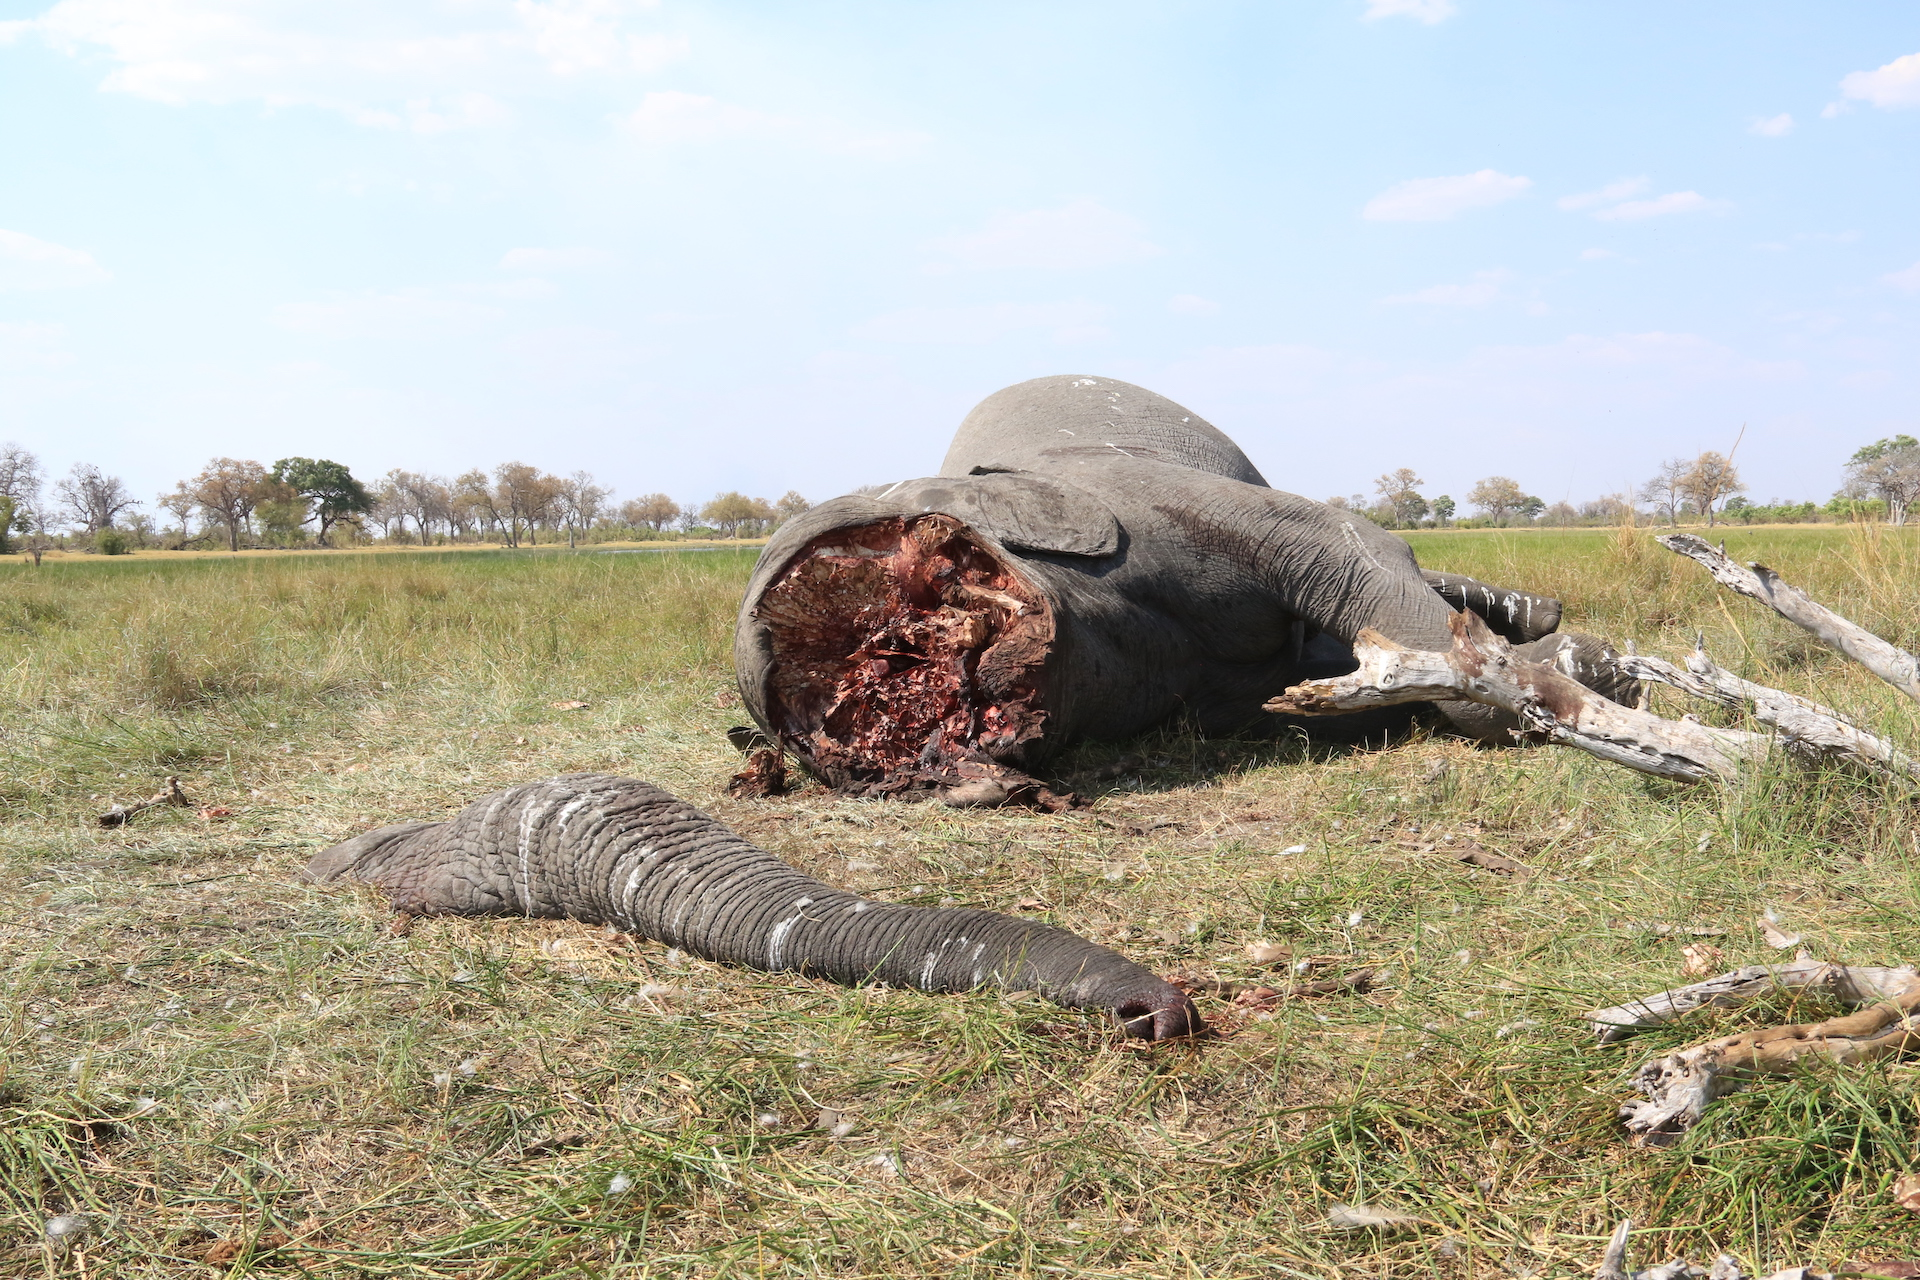 elephant_poaching_botswana Image supplied by Elephants Without Borders